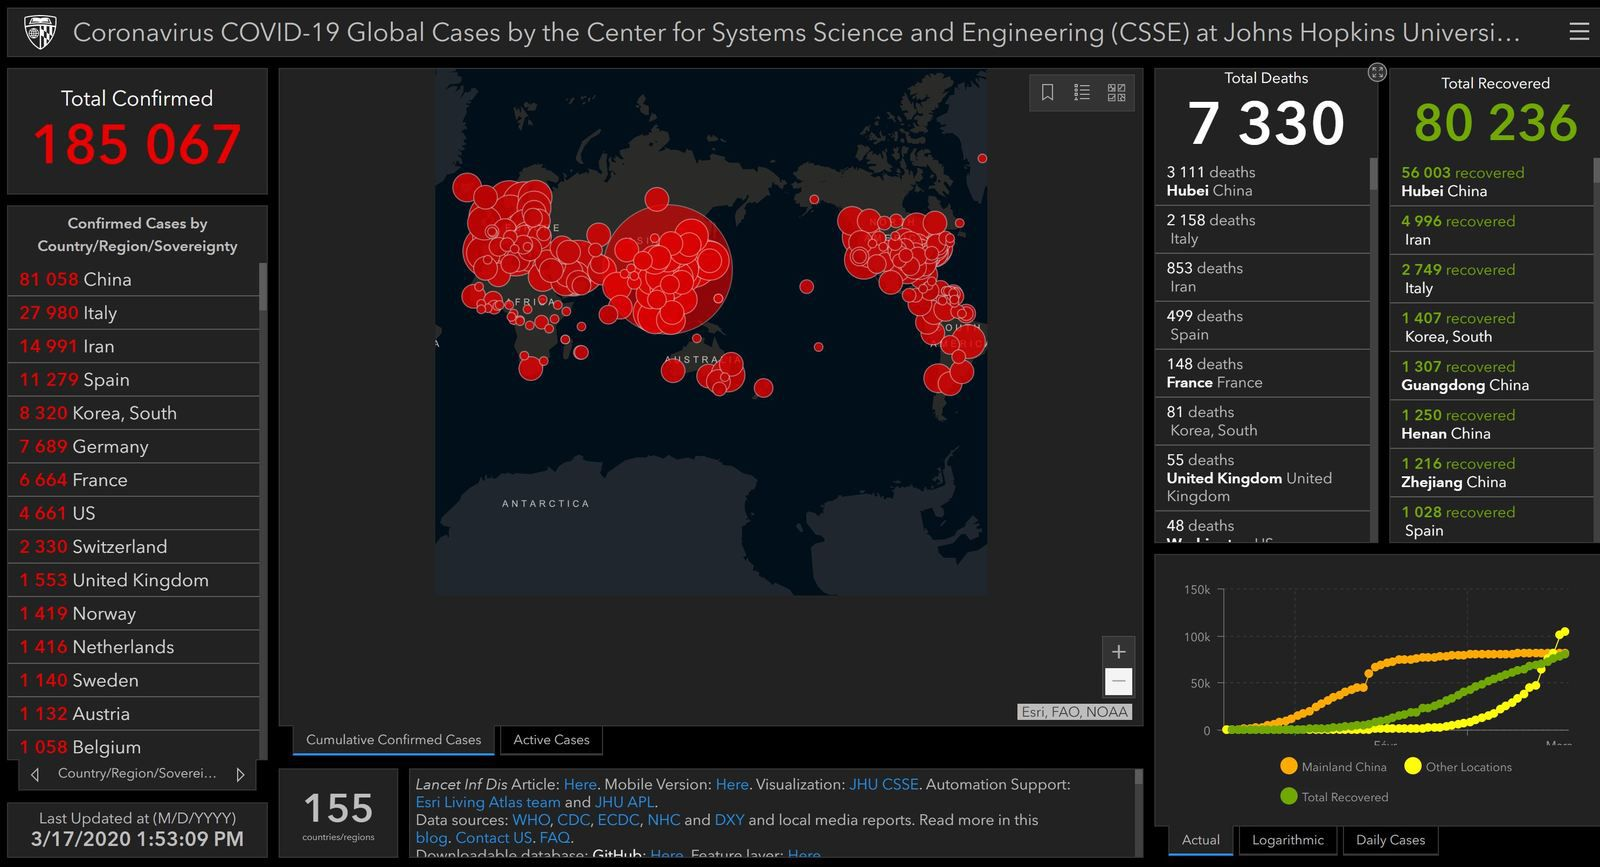 A real time map to follow the progress of the Coronavirus Covid-19 pandemic